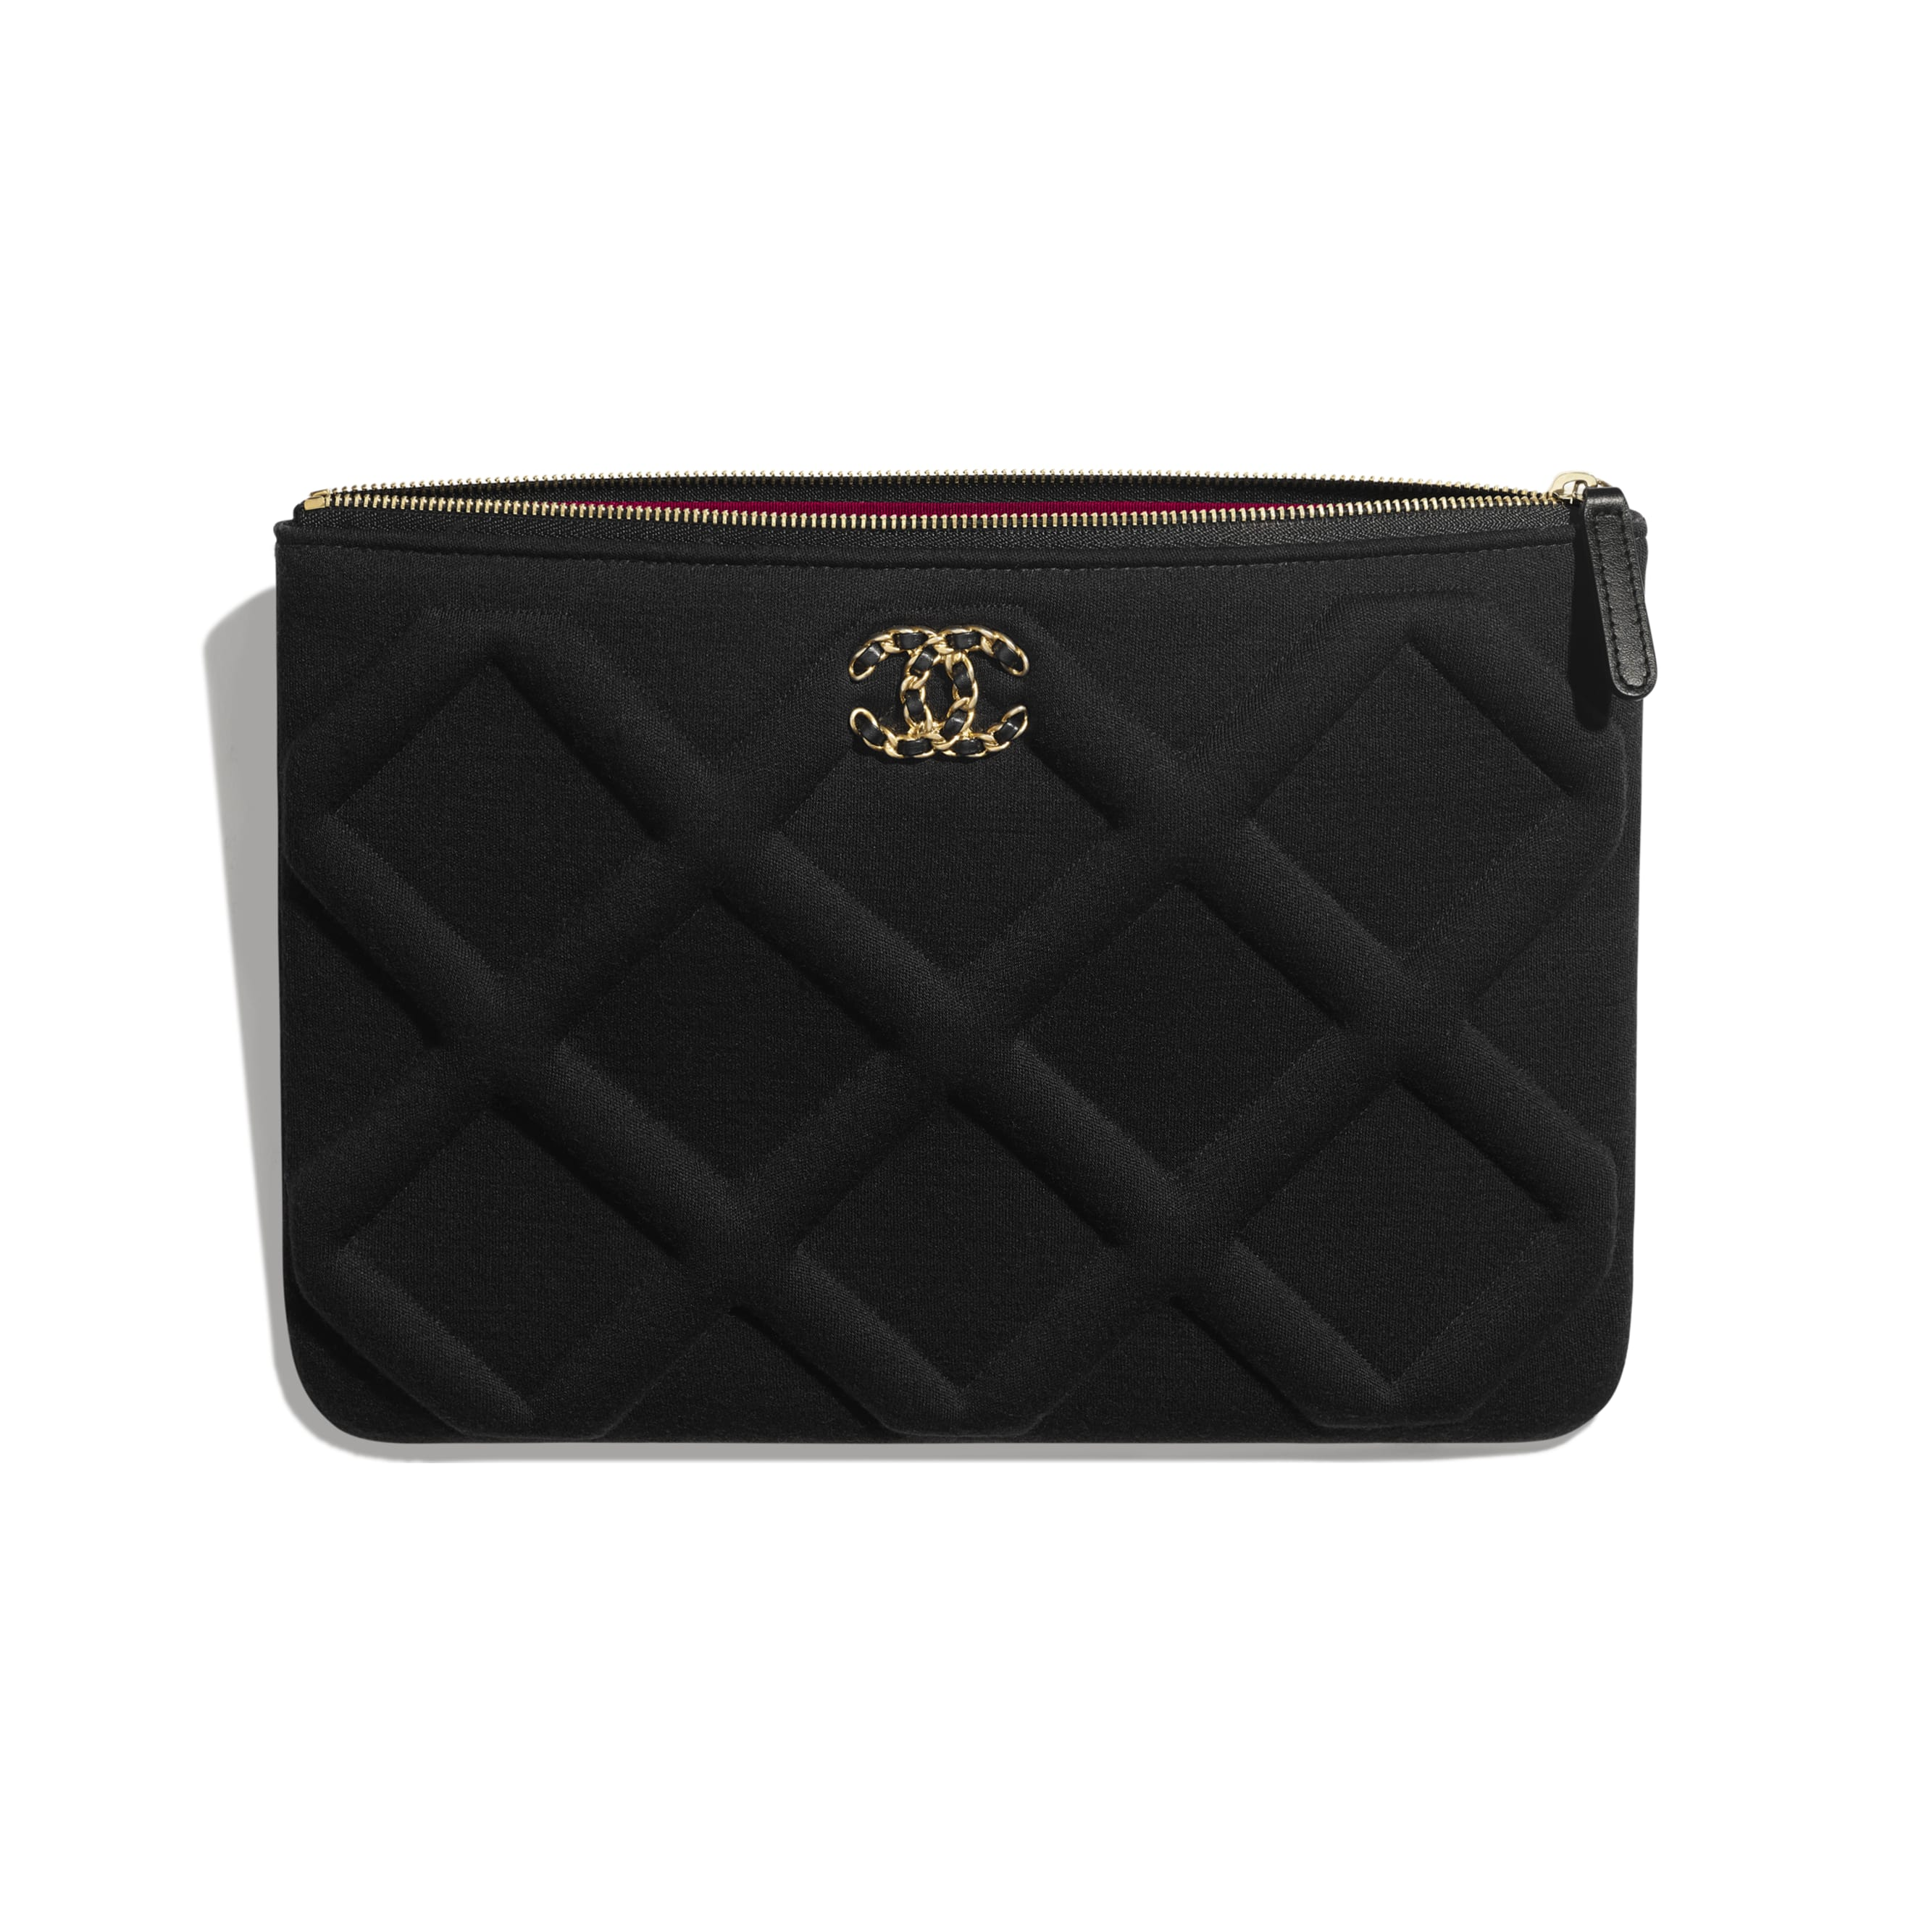 CHANEL 19 Pouch - Black - Jersey, Gold-Tone, Silver-Tone & Ruthenium-Finish Metal - Other view - see standard sized version